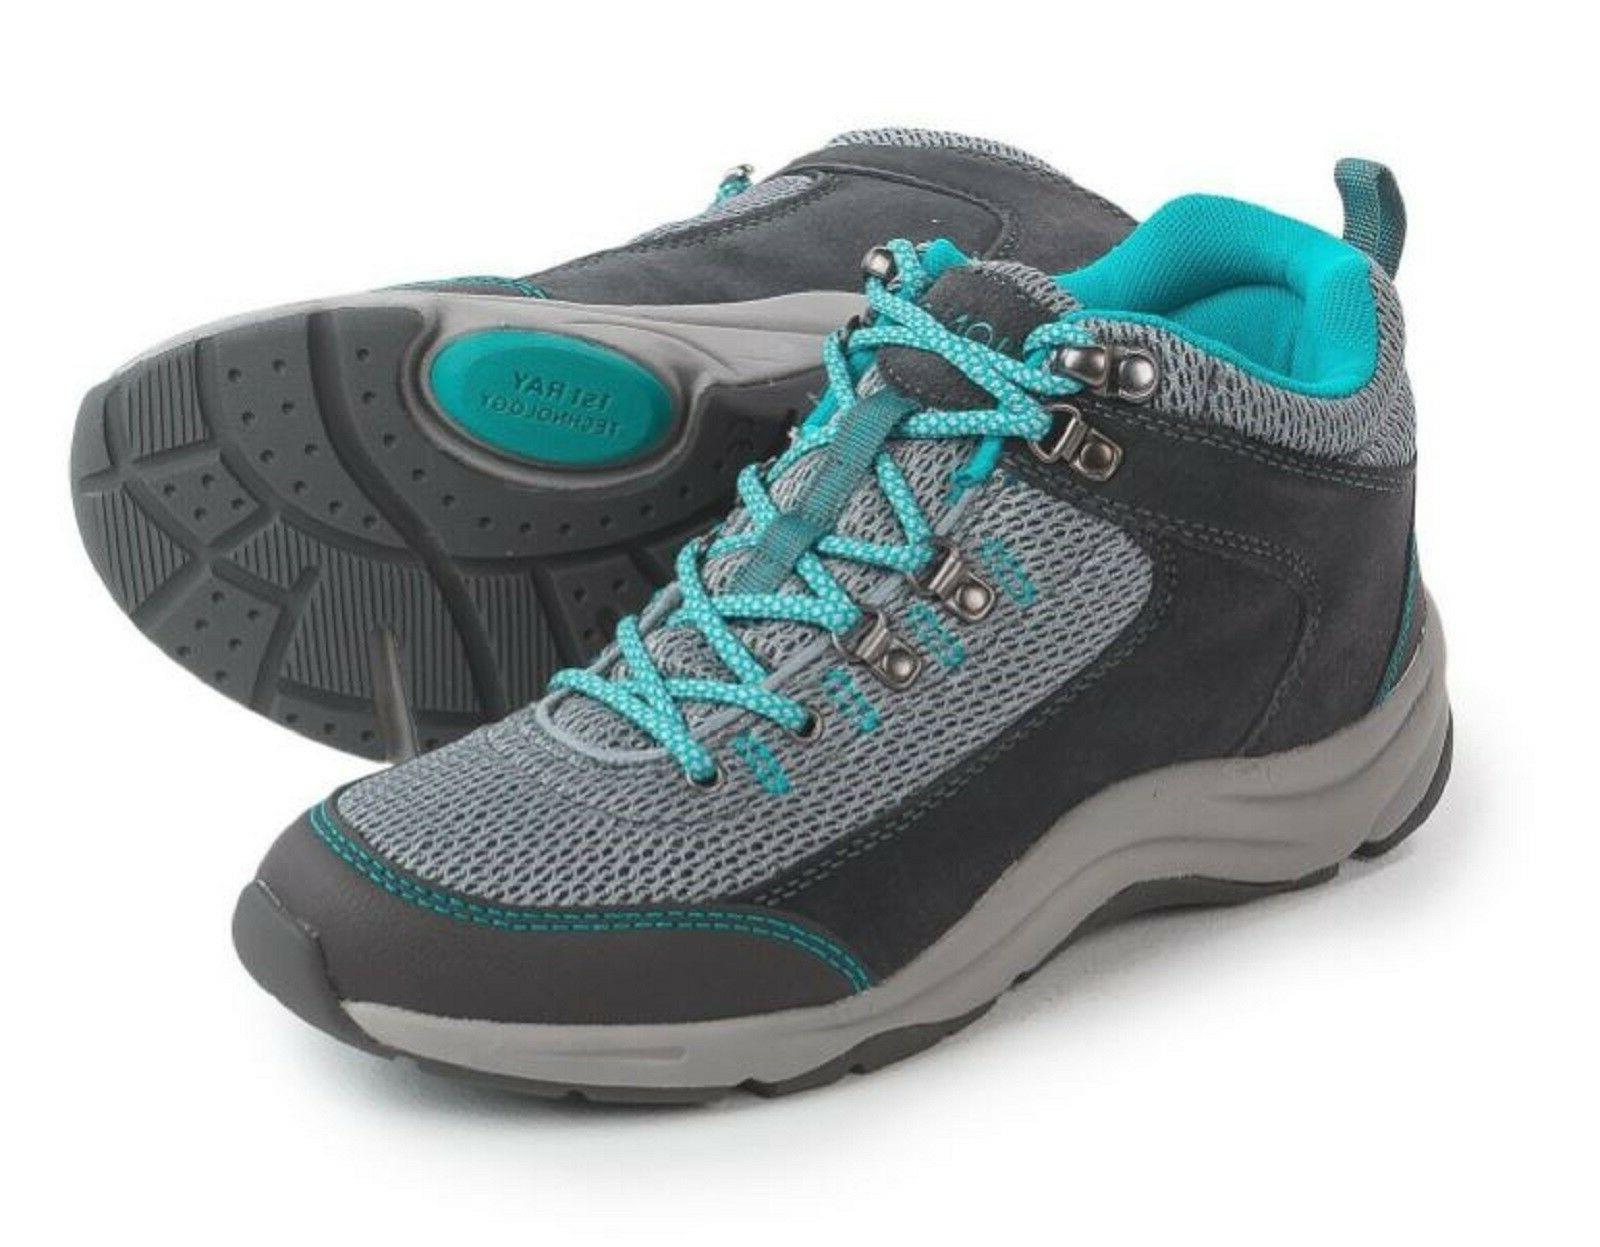 Vionic Orthaheel Action Cypress Lace Up